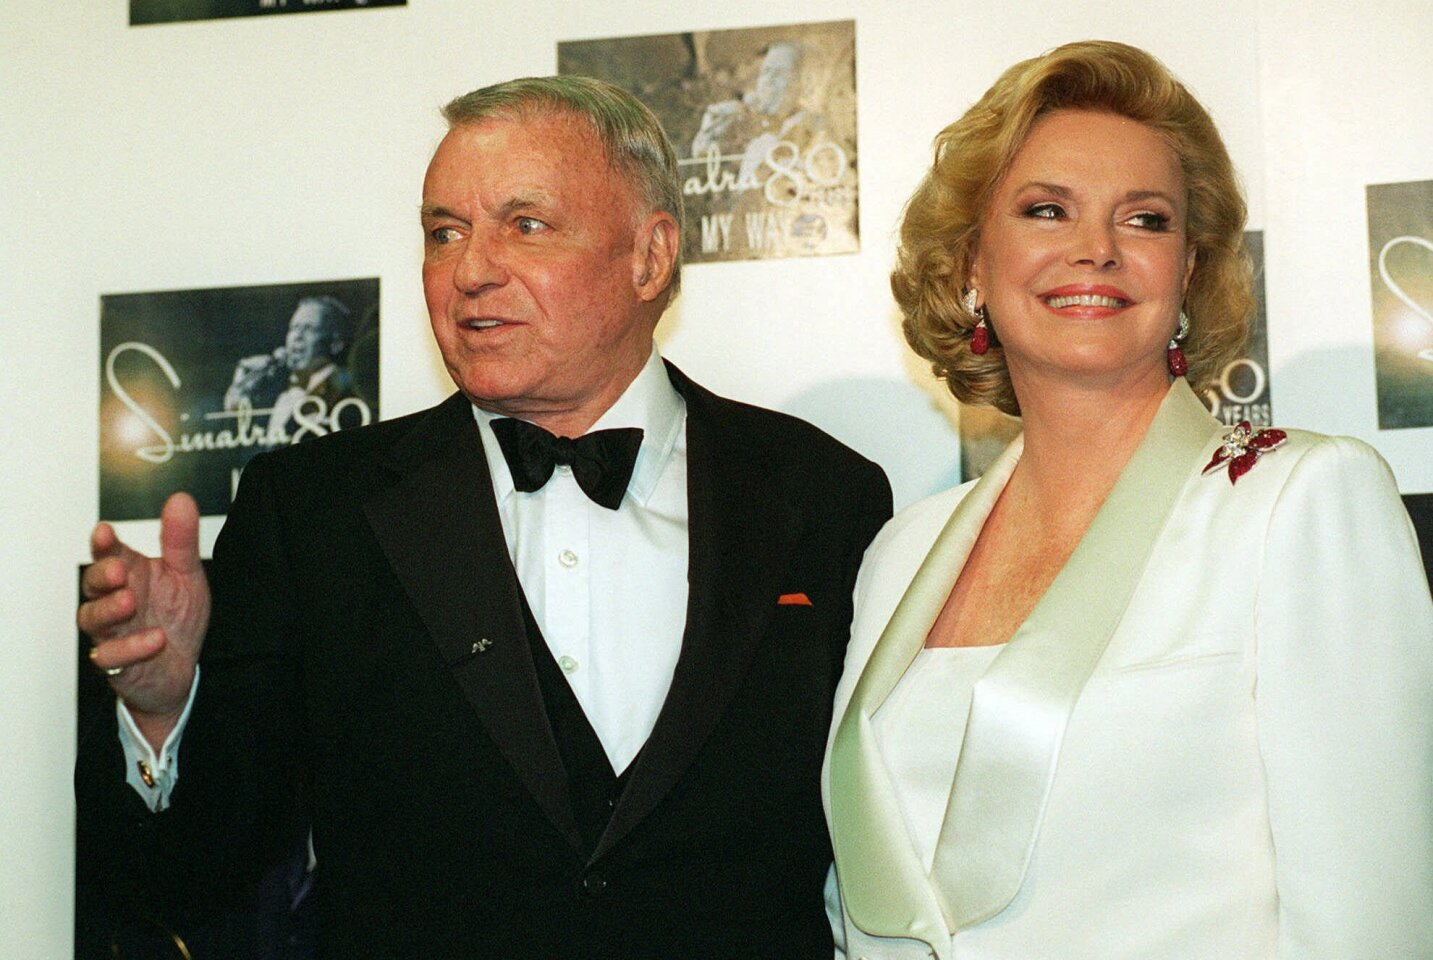 Frank Sinatra and his wife Barbara are shown in this Nov. 19, 1995, file photo.